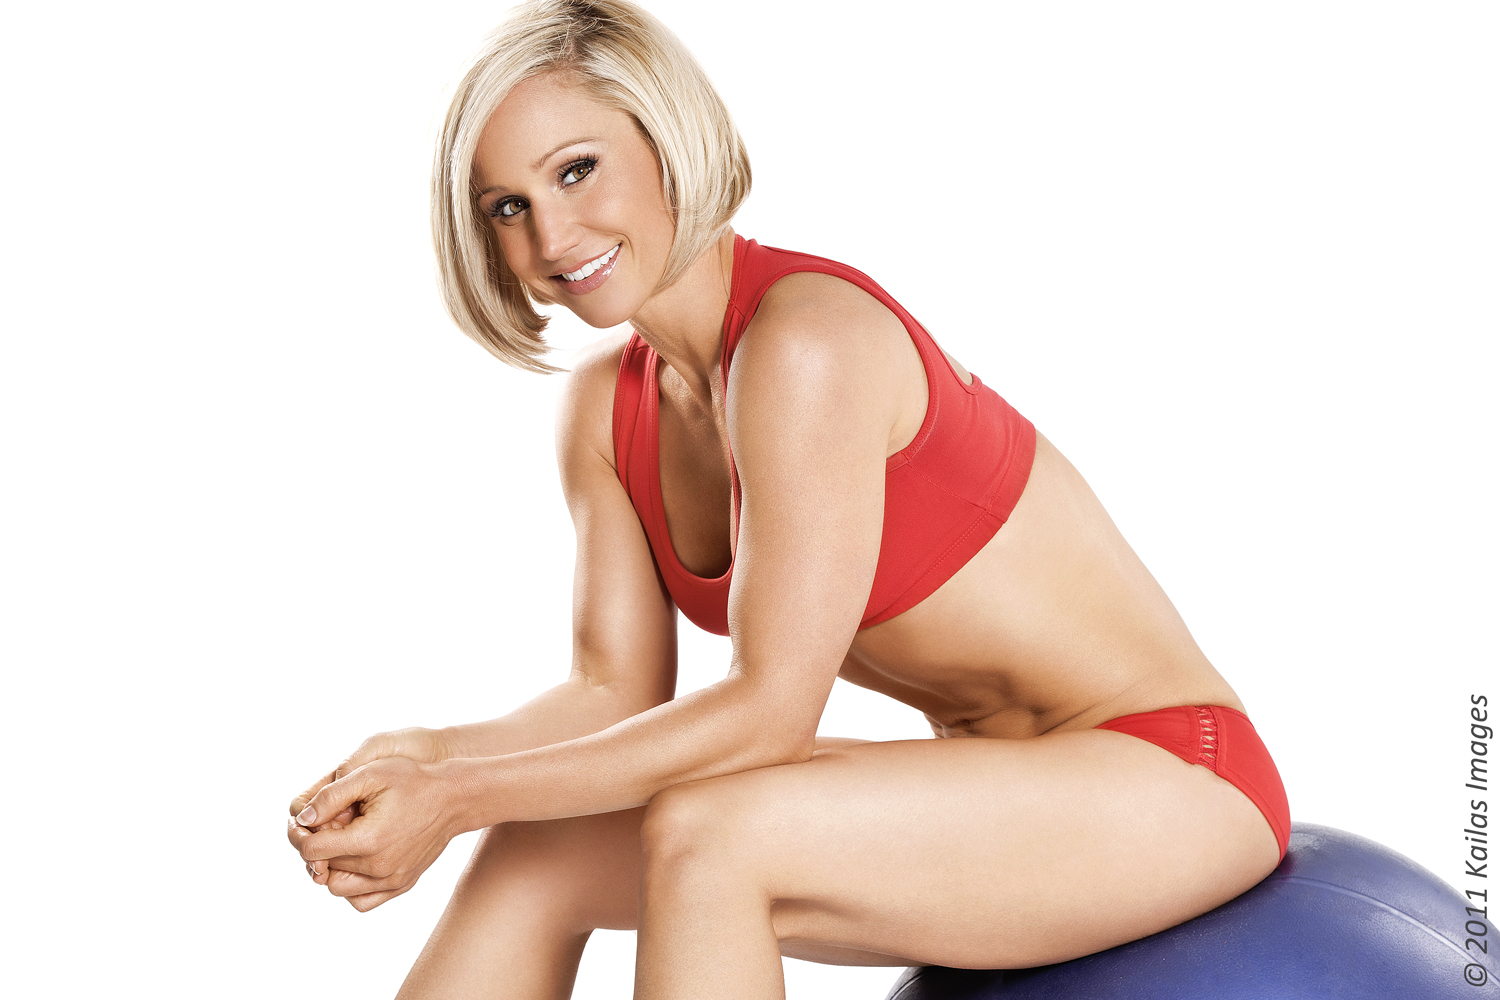 Fitness Q&A with Jamie Eason | Forher